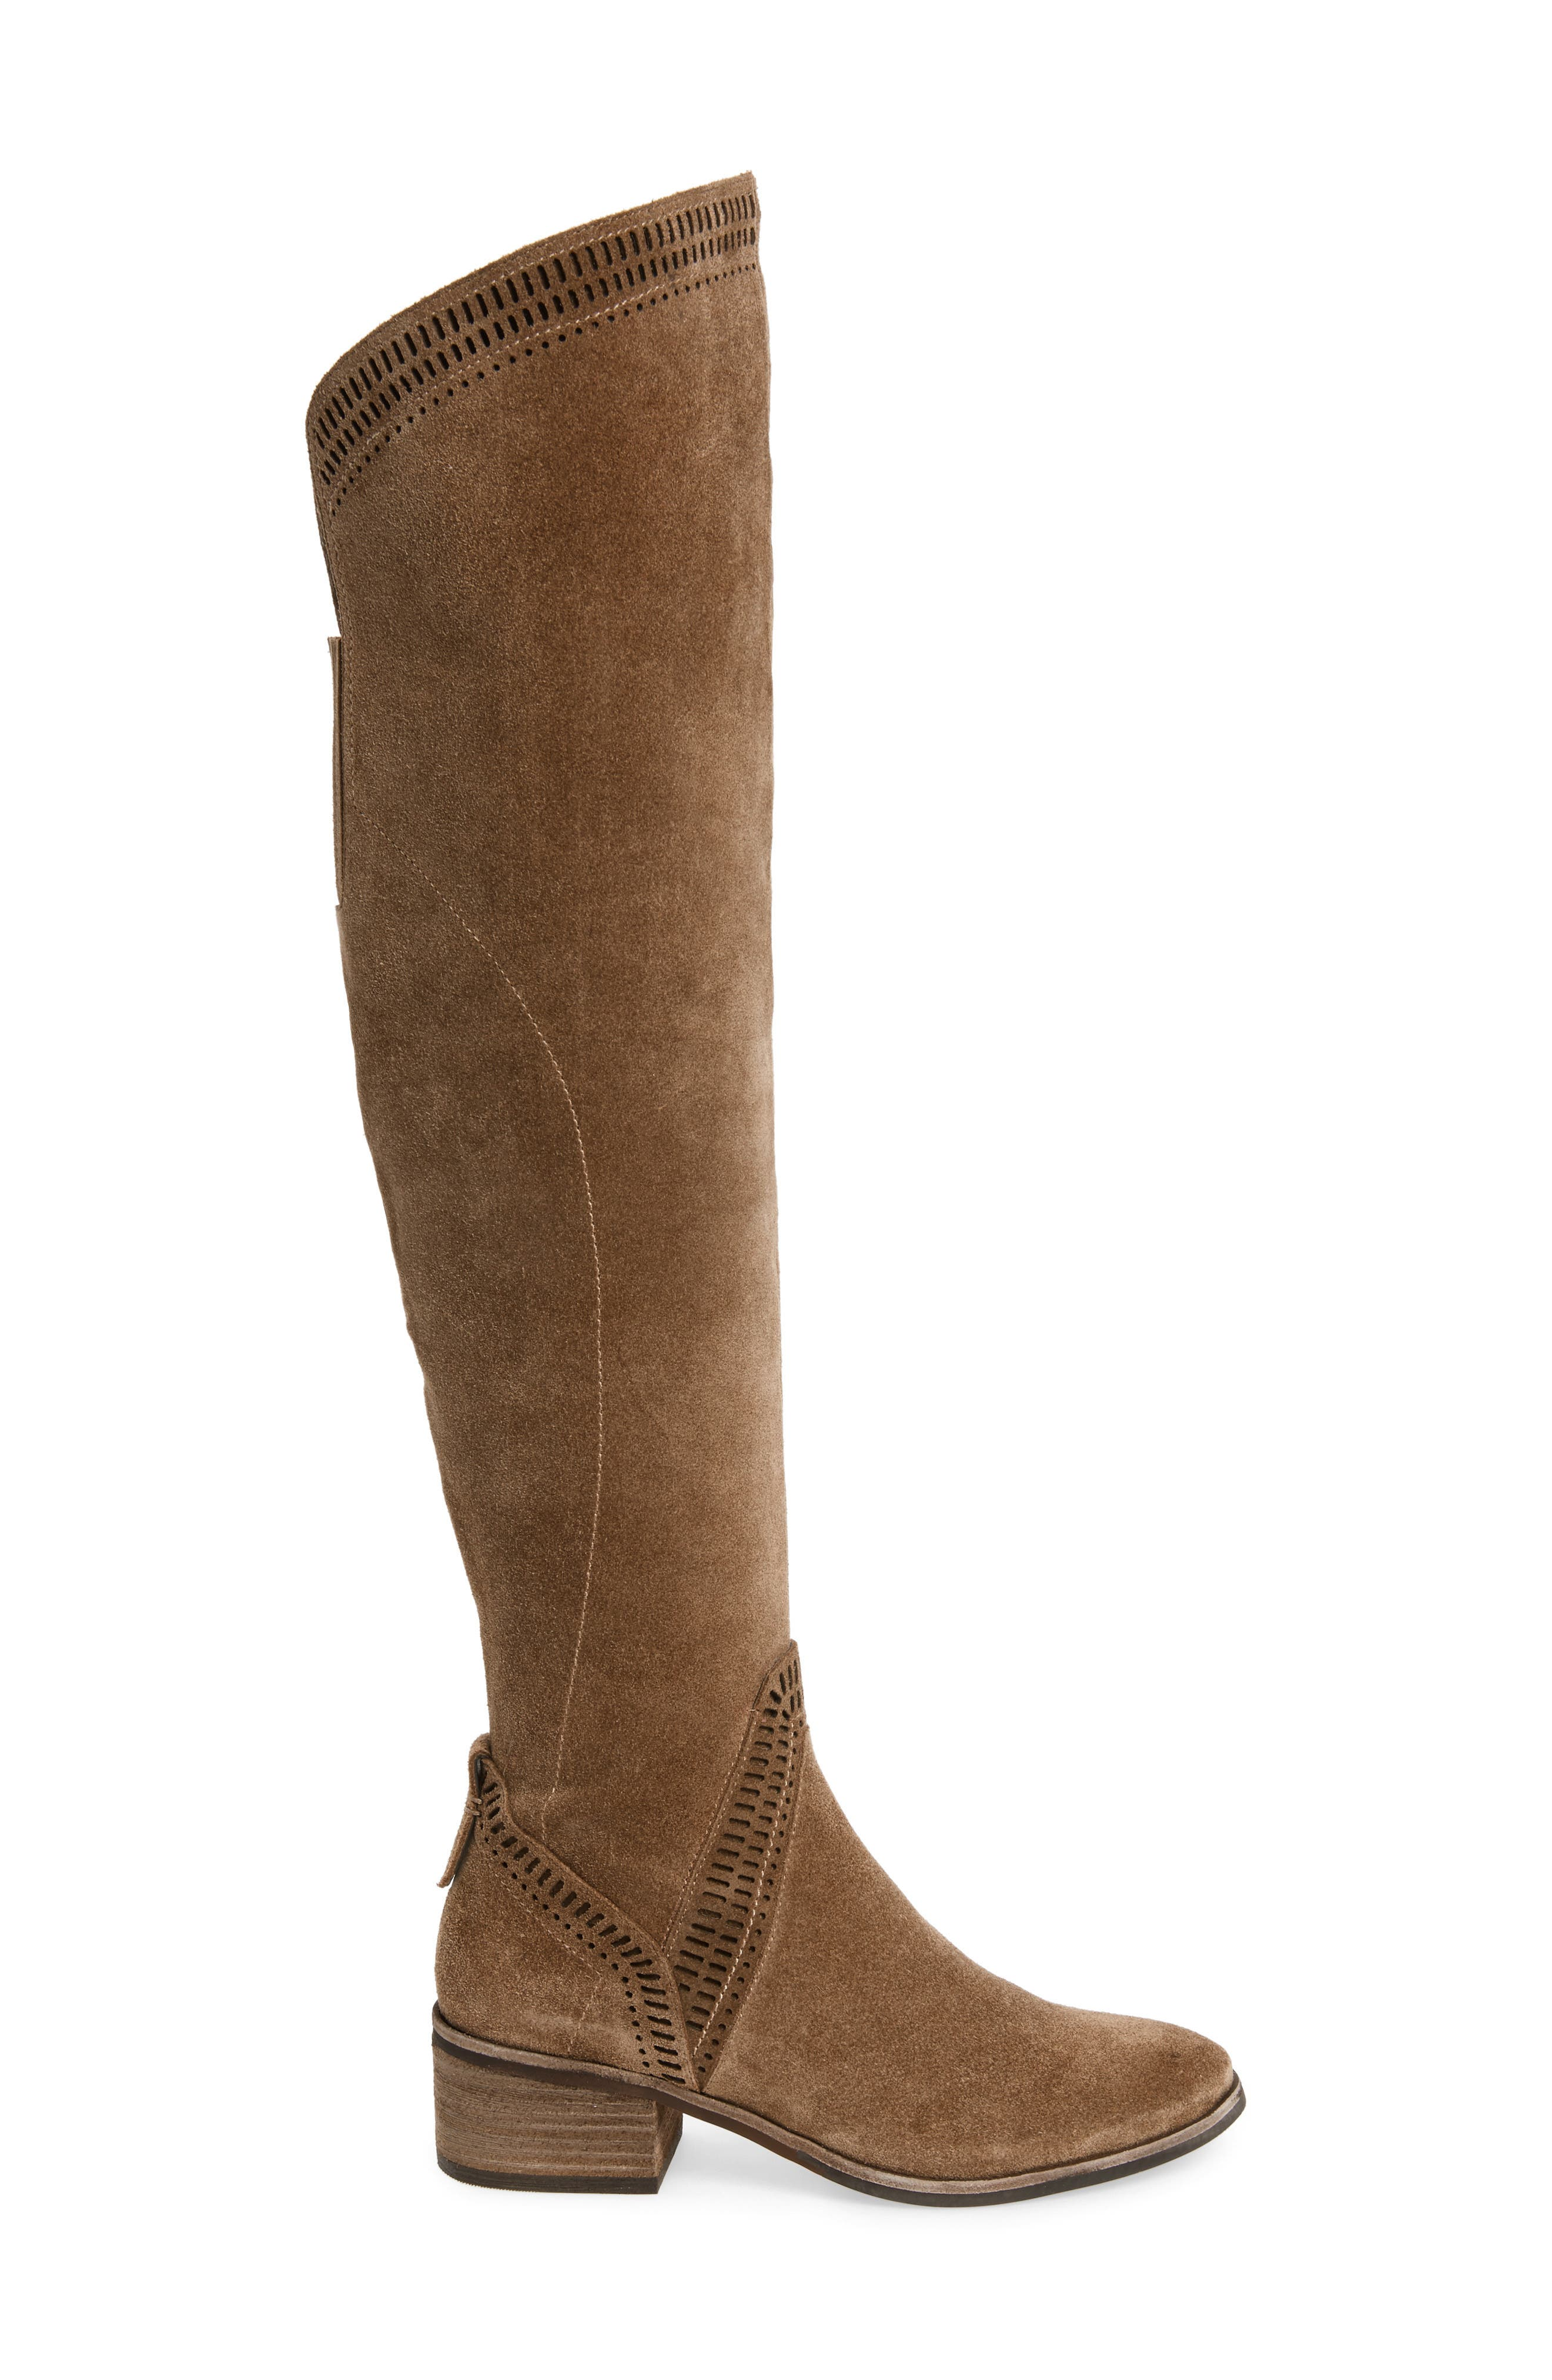 VINCE CAMUTO, Karinda Over the Knee Boot, Alternate thumbnail 3, color, 200